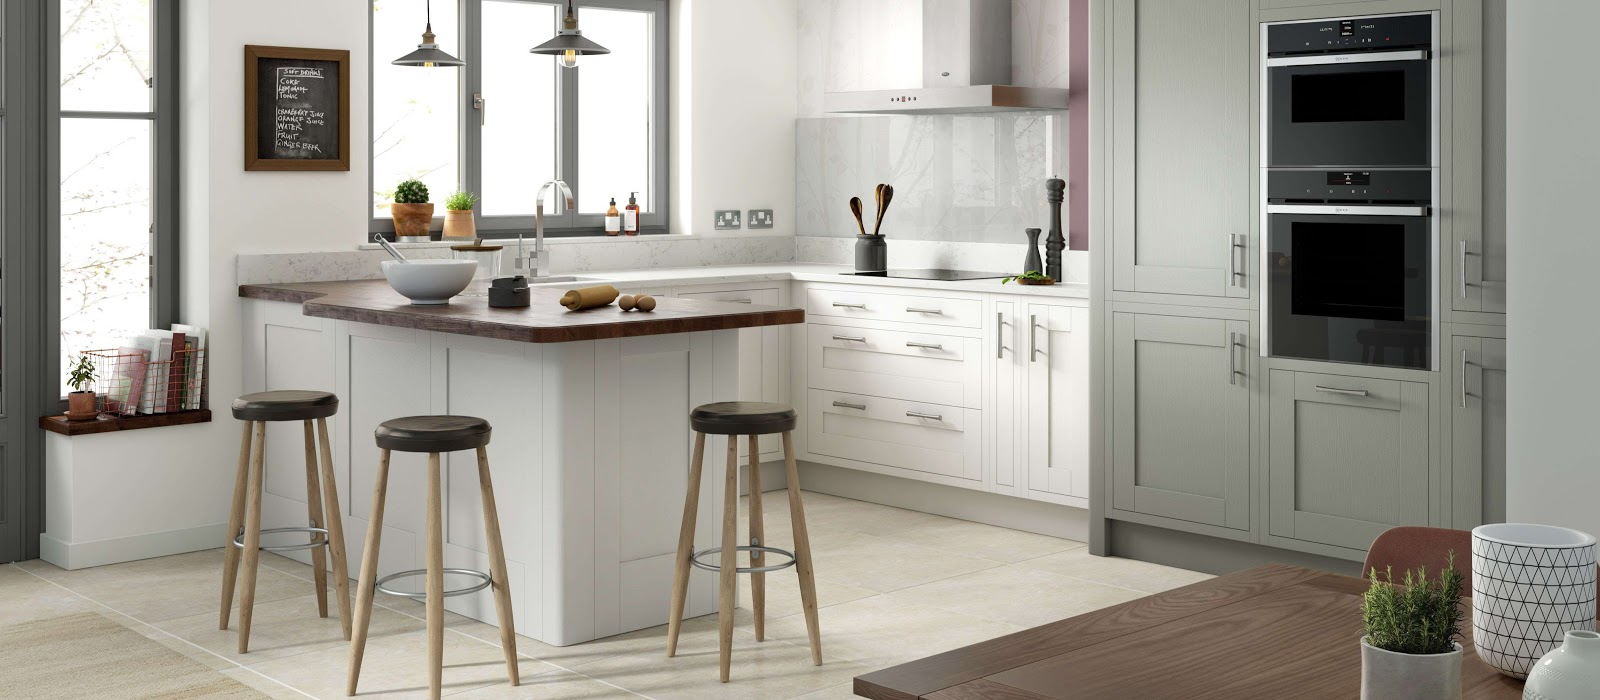 Kitchen Designs In Welford | Heart Kitchens